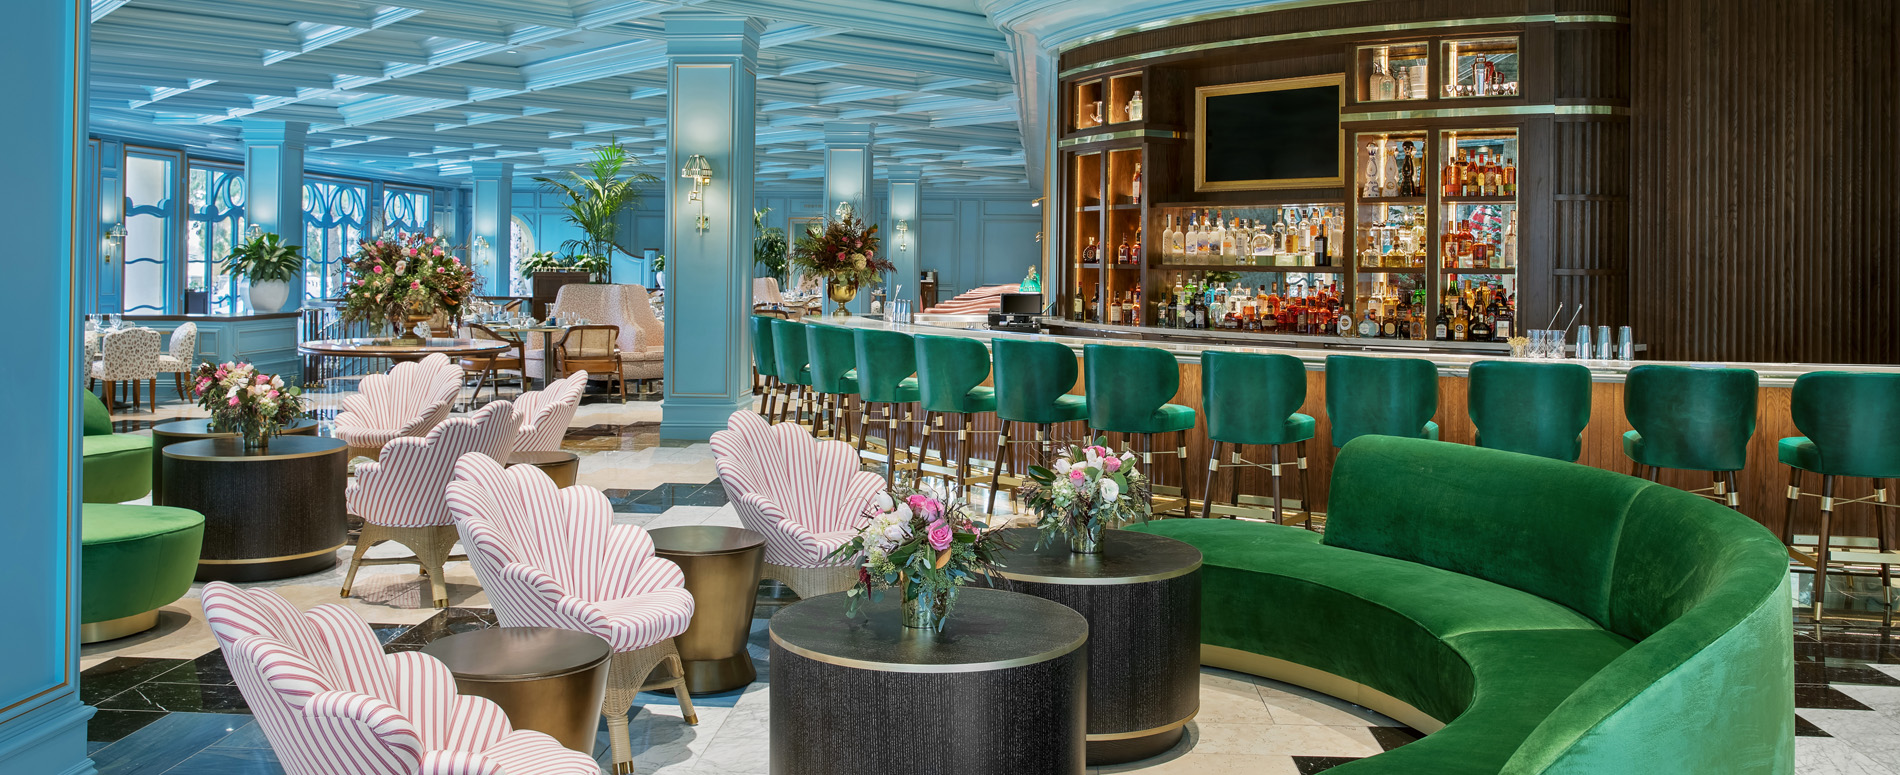 Interior shot of Sadelle's bar, with a teal blue ceiling and big green couches.